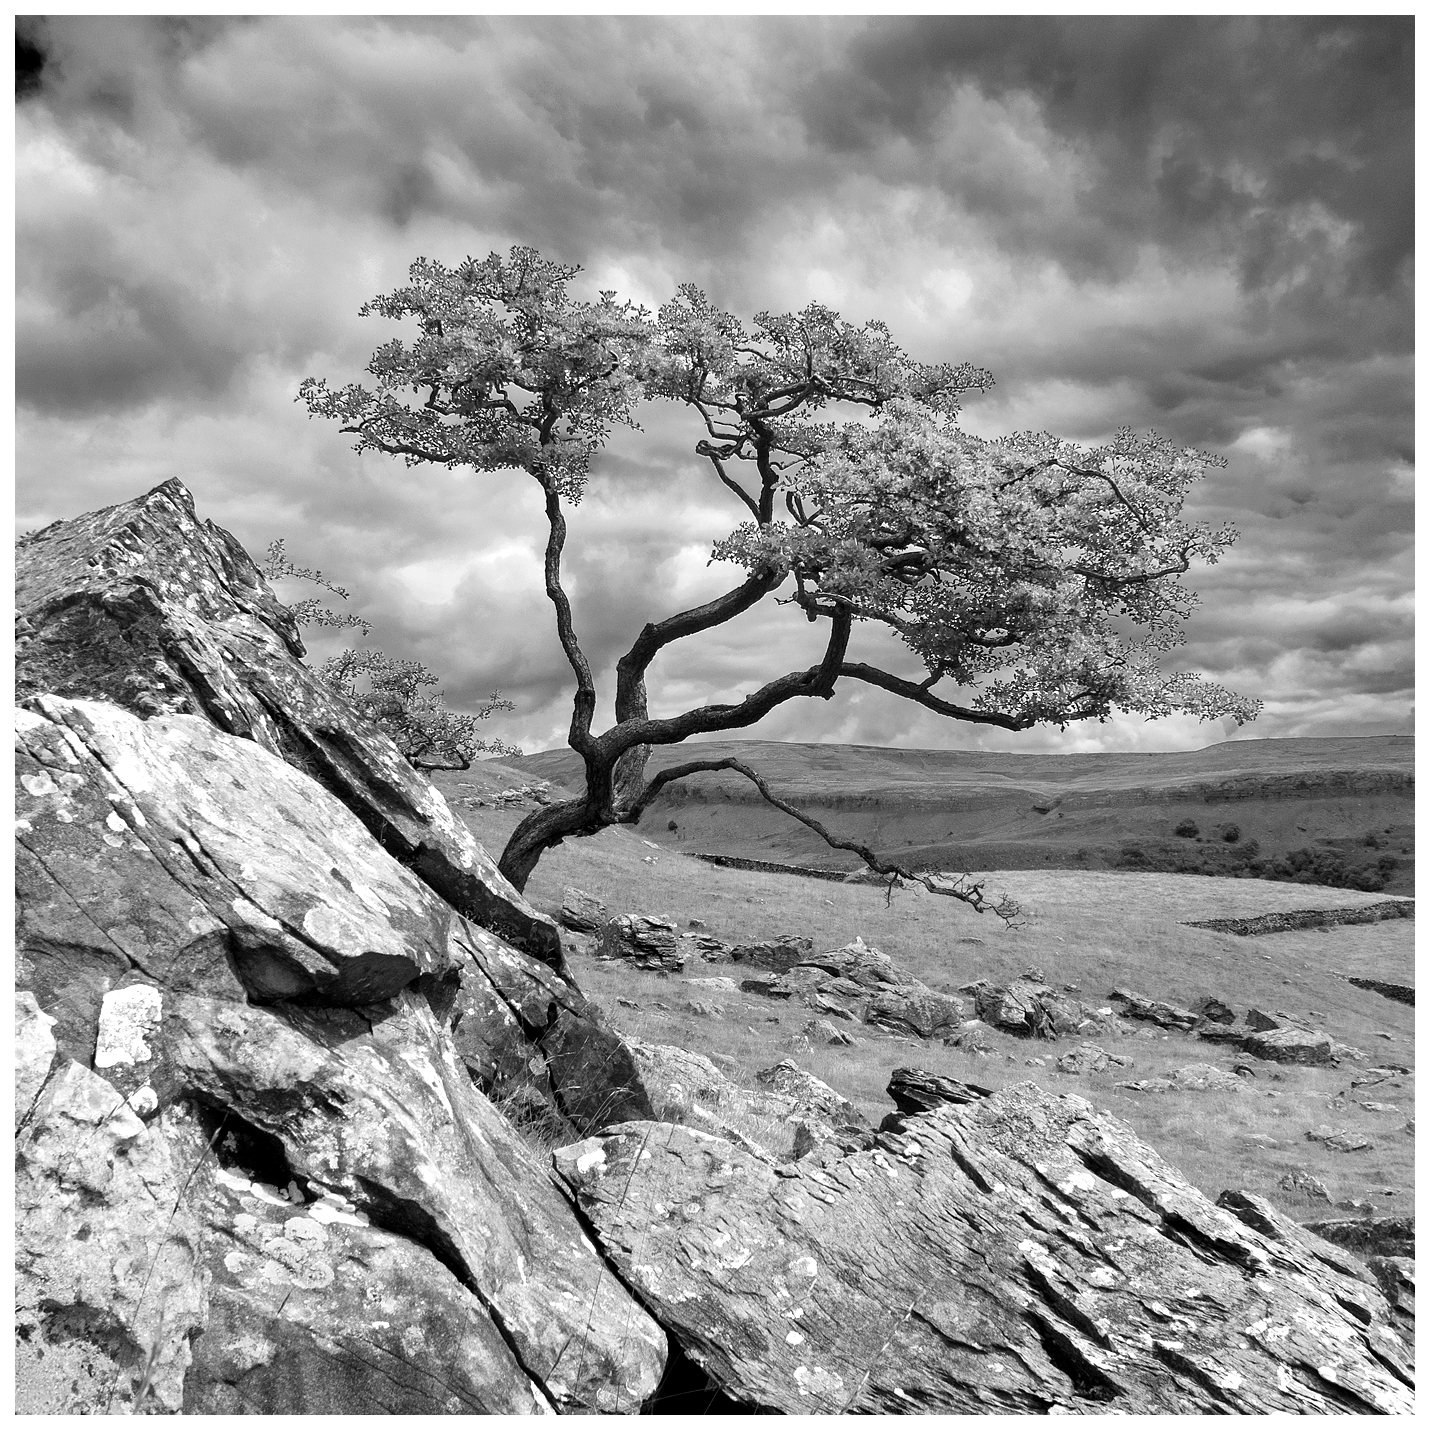 Lone Tree 2 at Norber Erratics